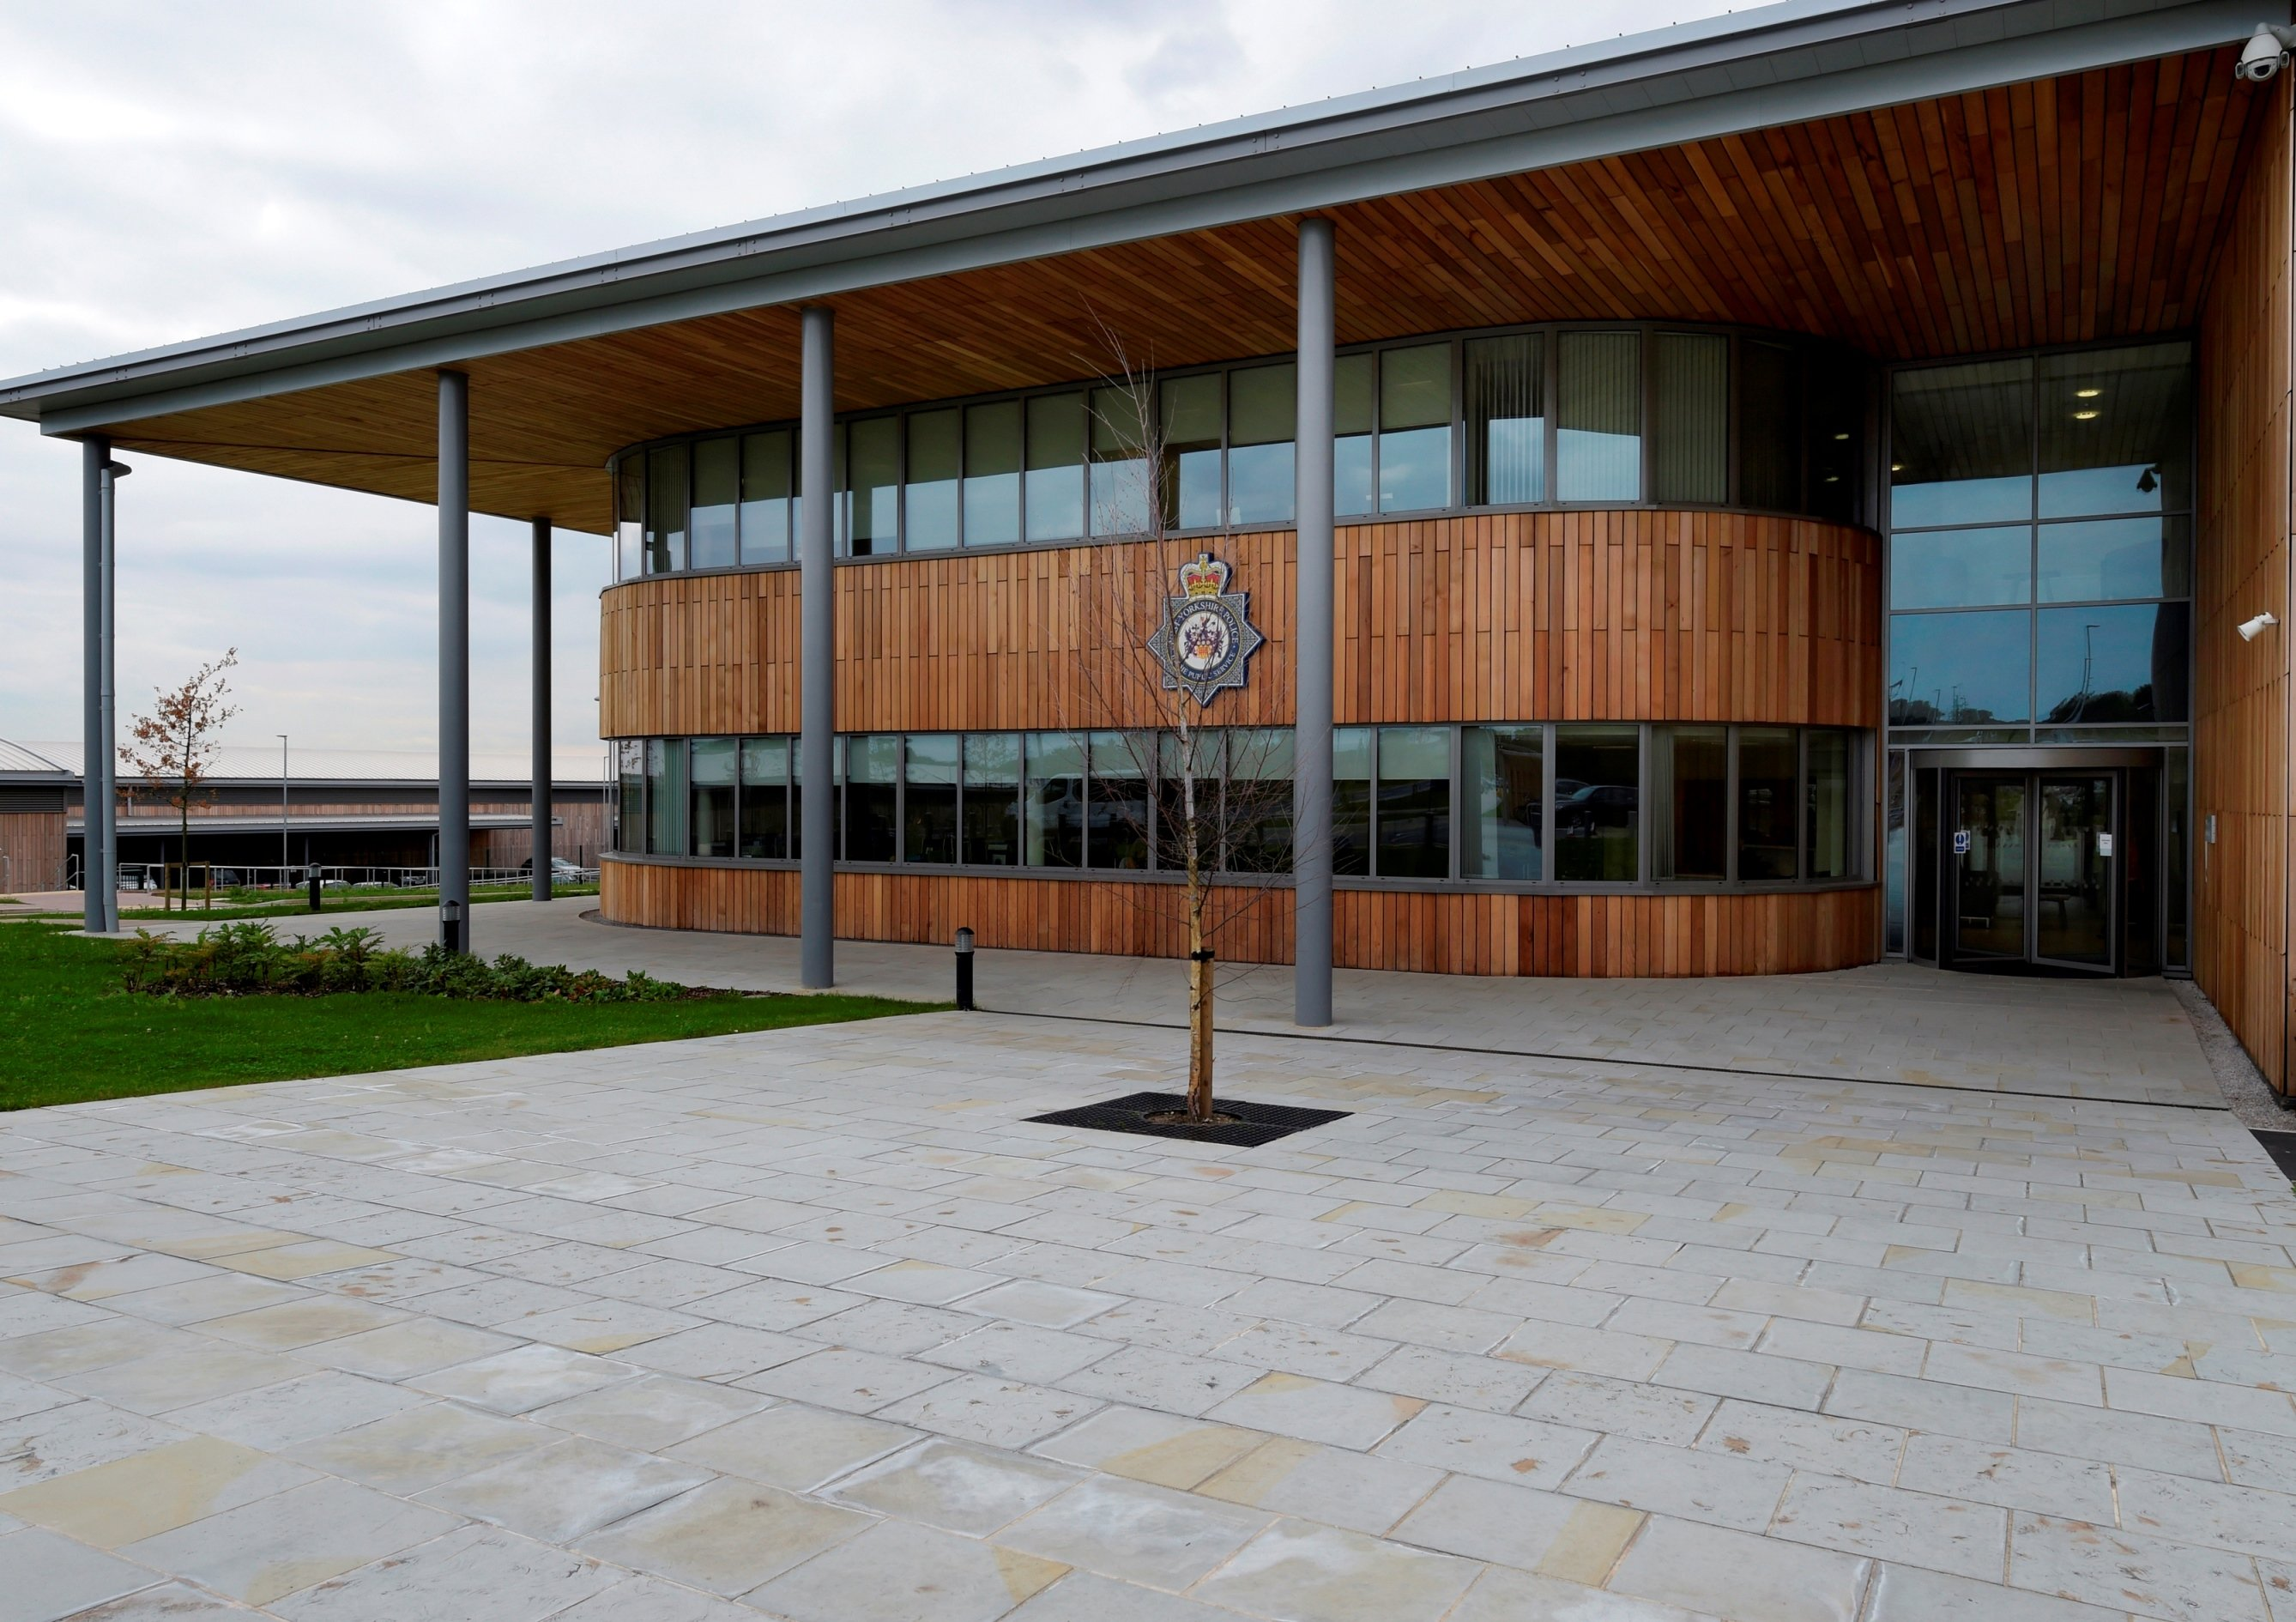 Brett Landscaping provides a 'natural'paving solution for police training centre